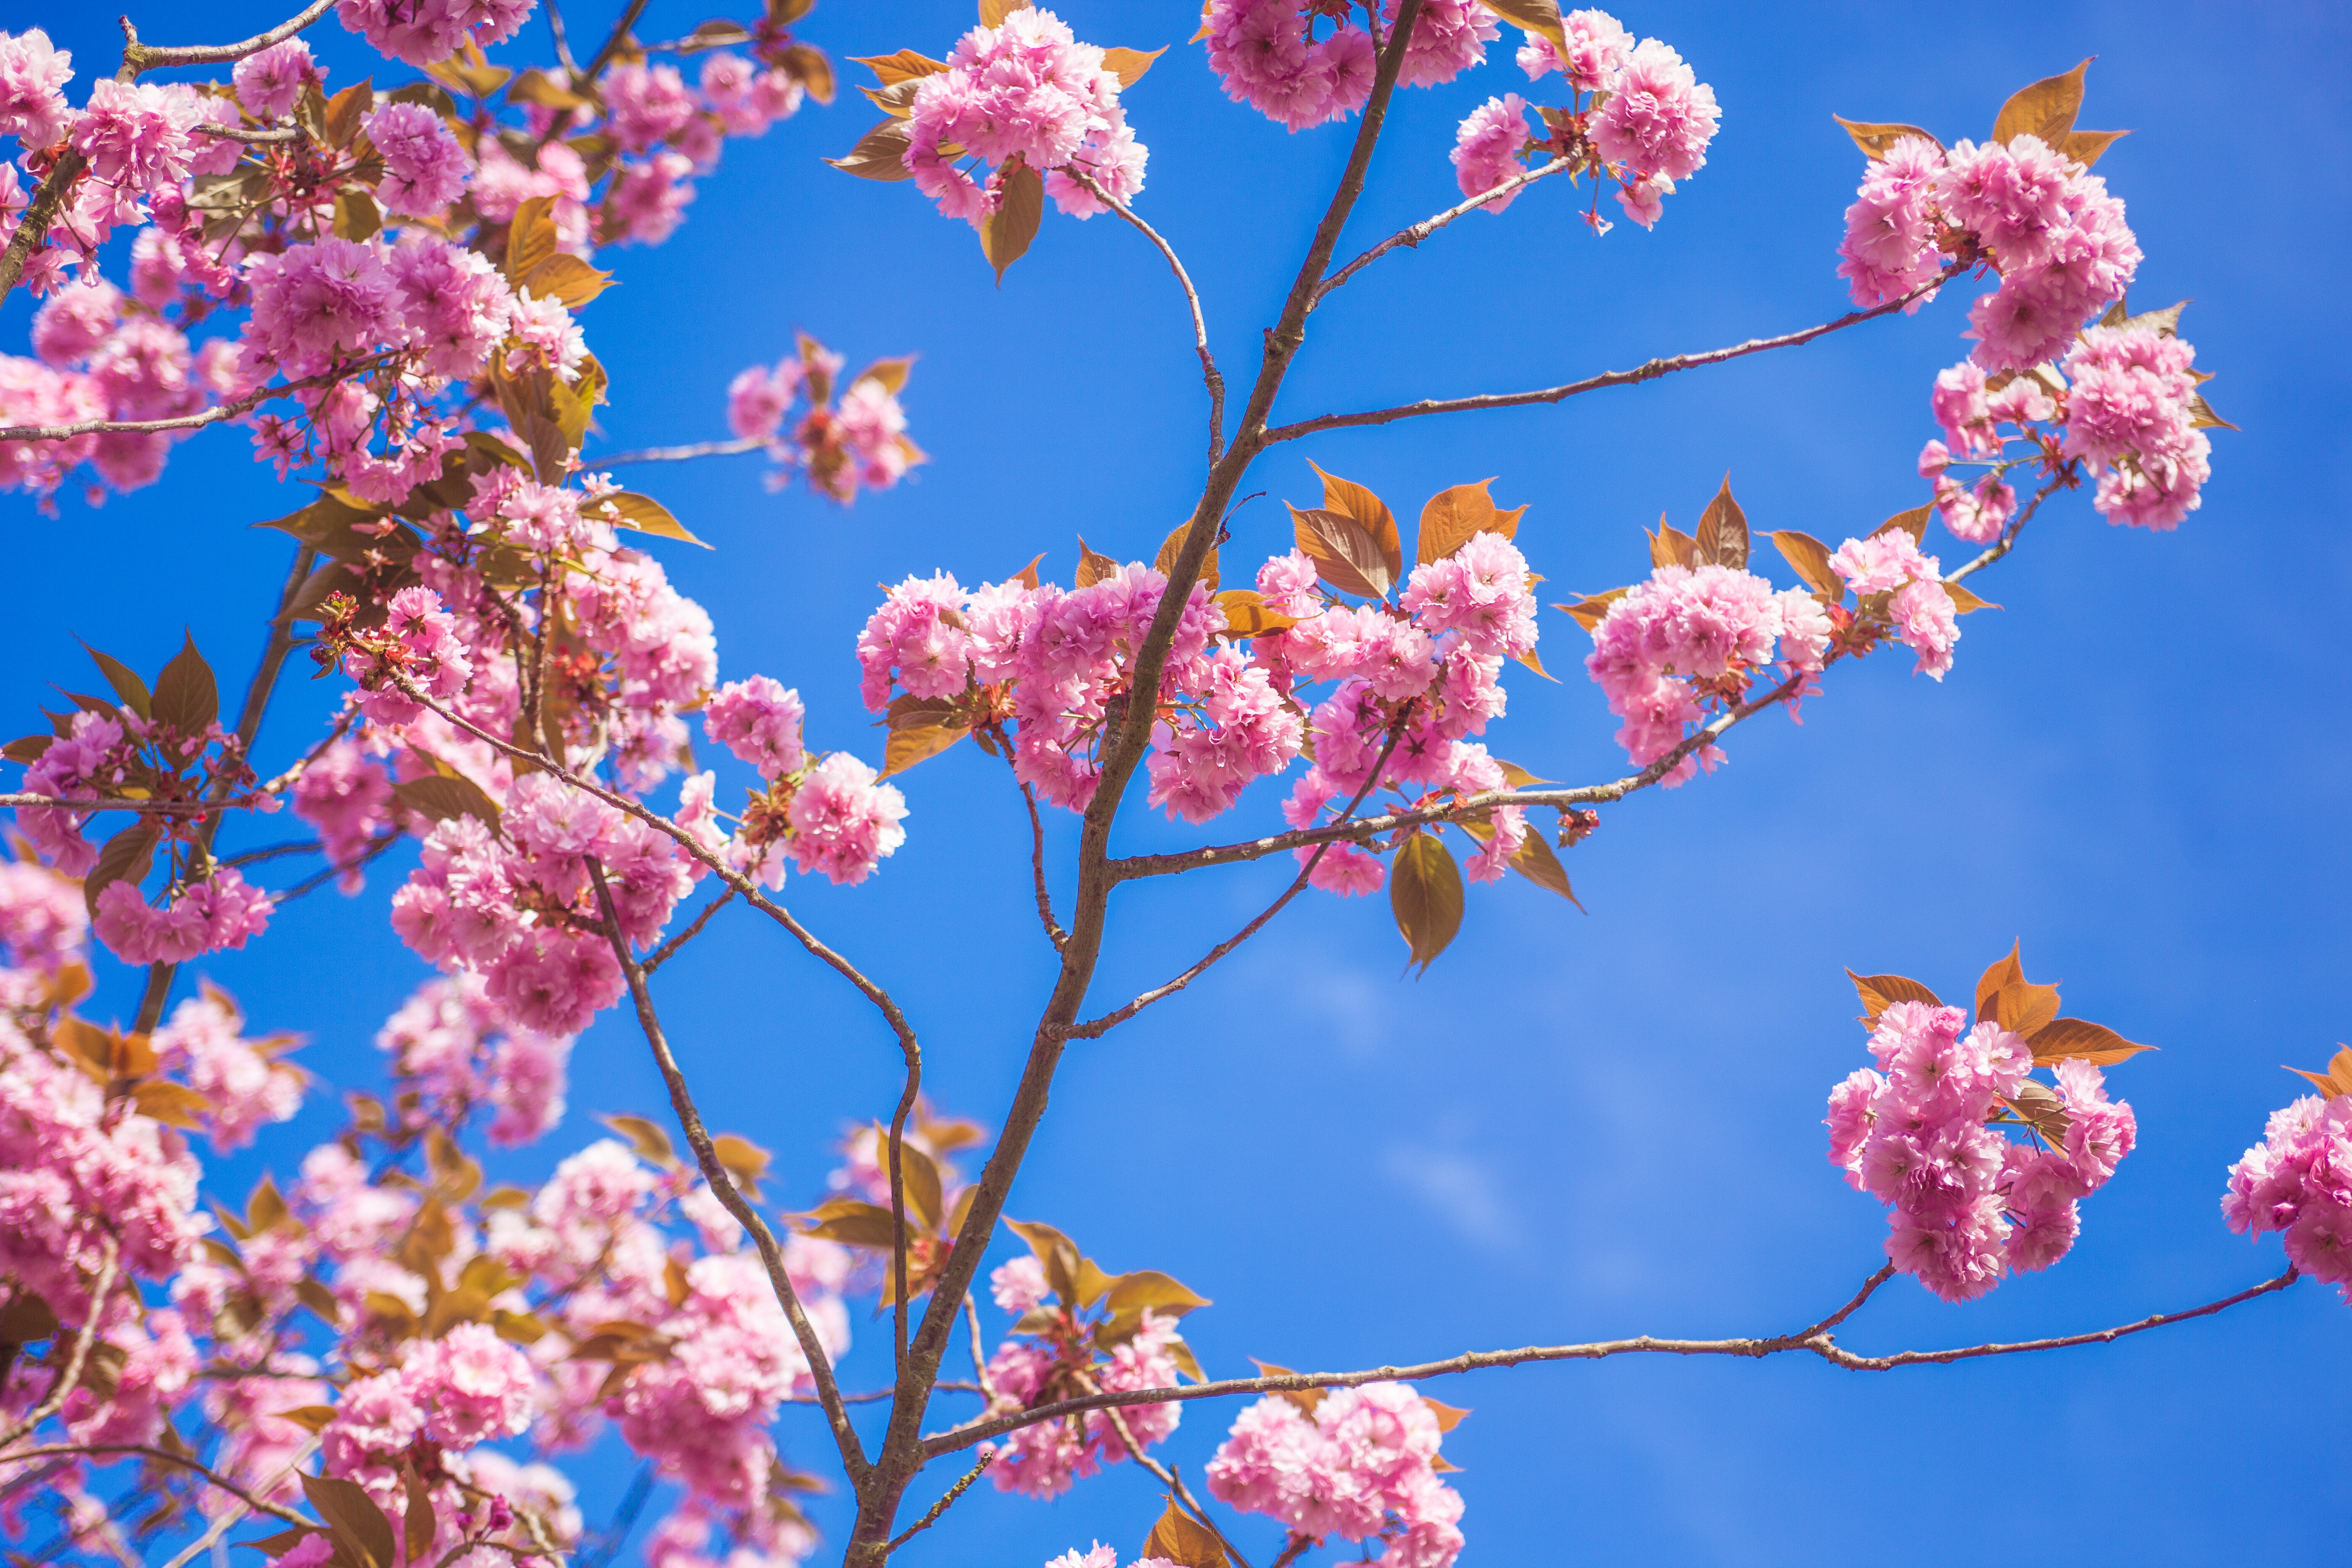 Pink Petaled Flowers Under Blue Sky